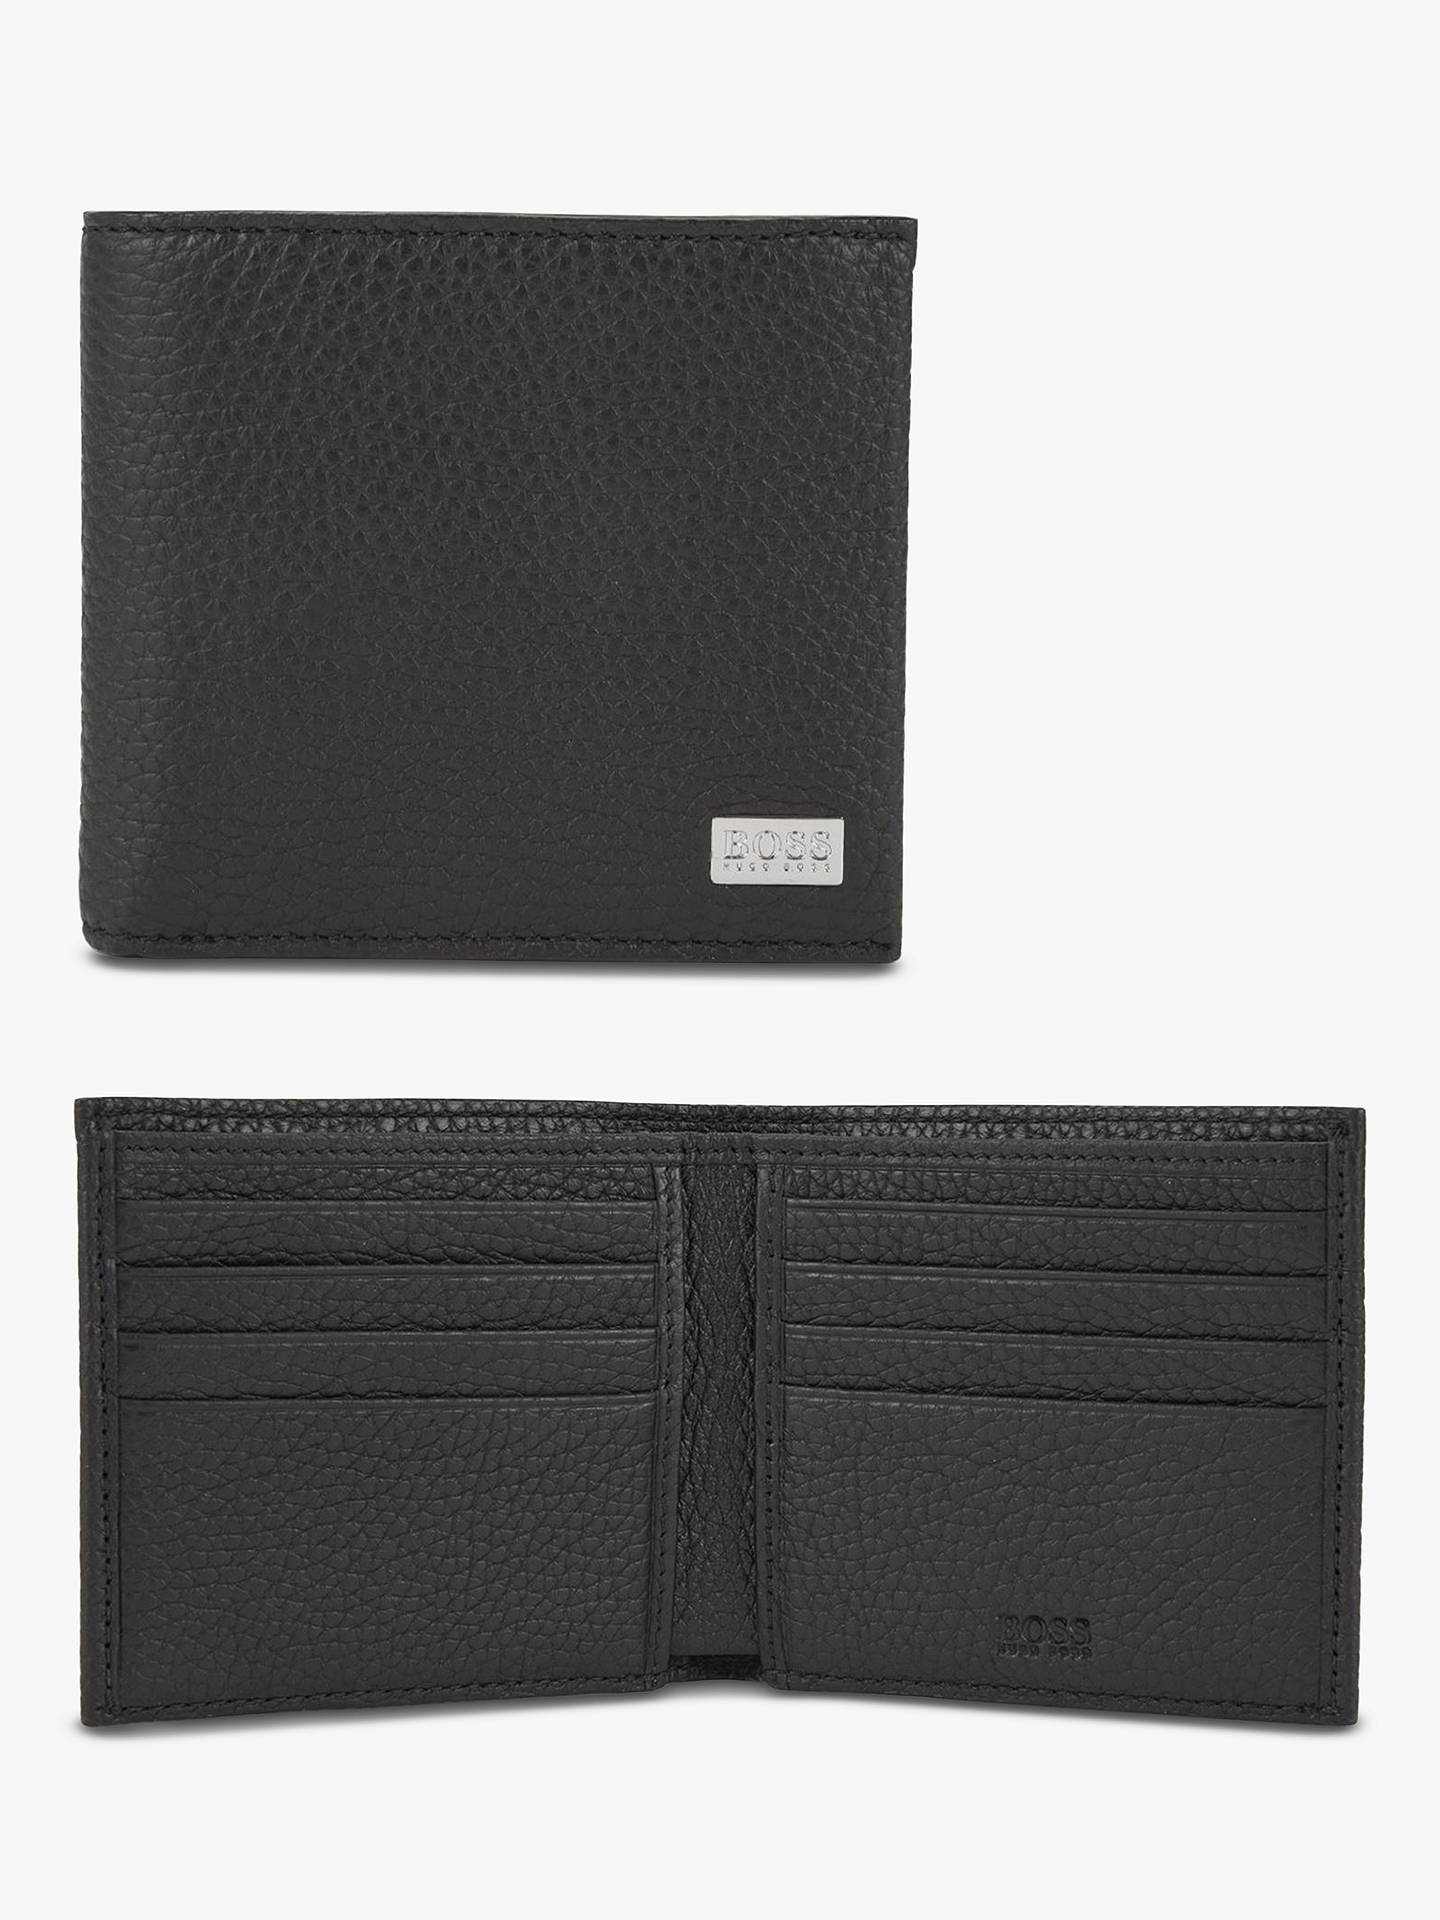 BuyBOSS Crosstown Grained Italian Leather Eight Card Wallet, Black Online at johnlewis.com